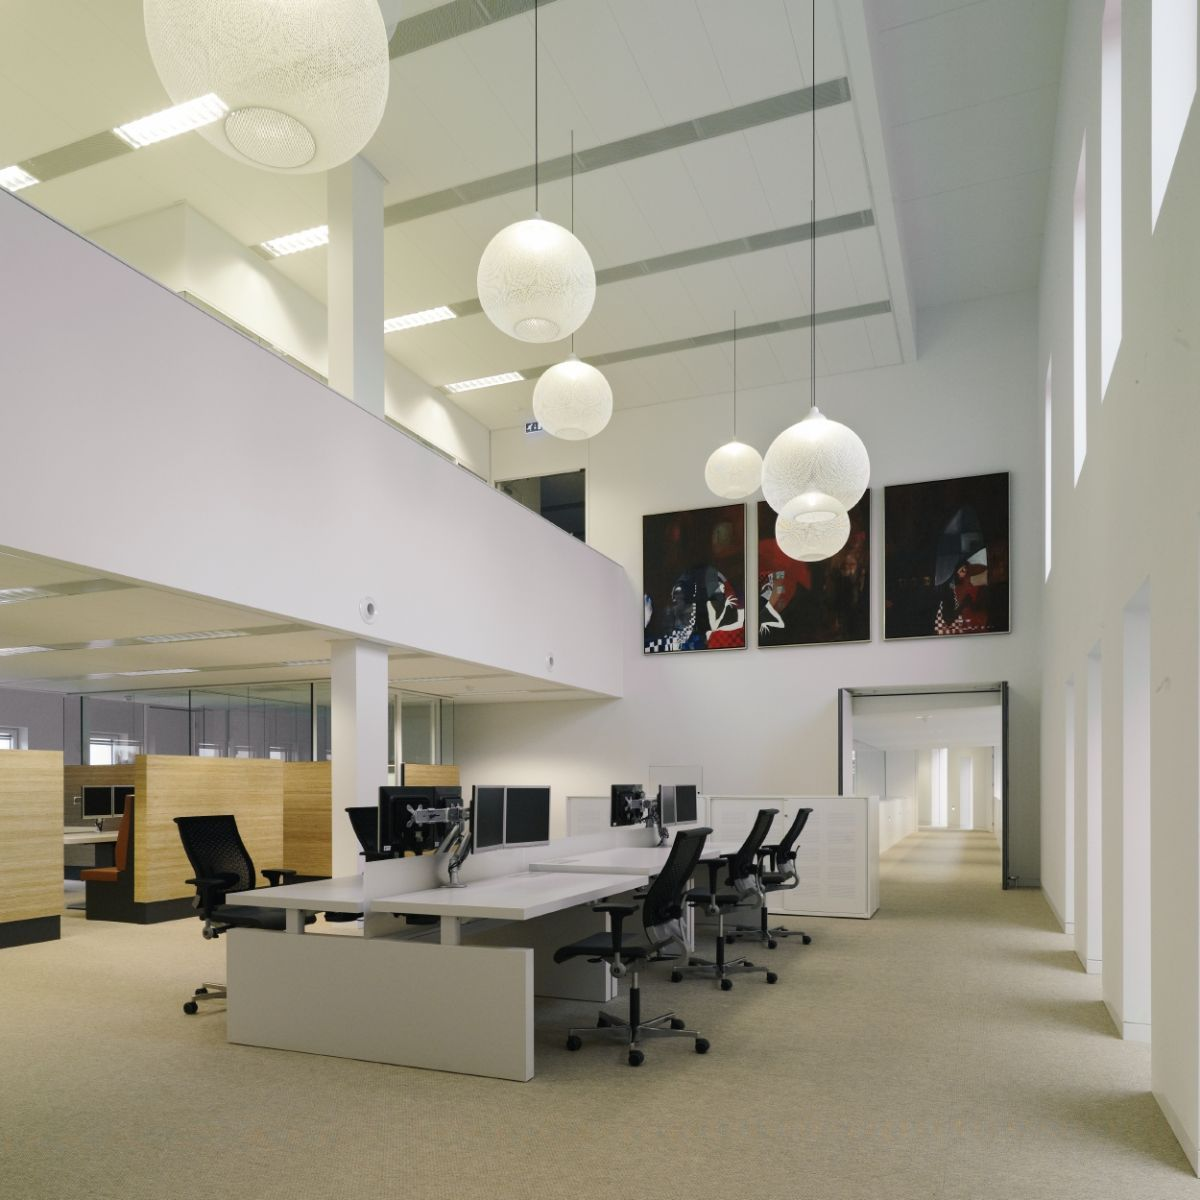 Overhead Lighting Overhead Office Lighting Lighting Ideas